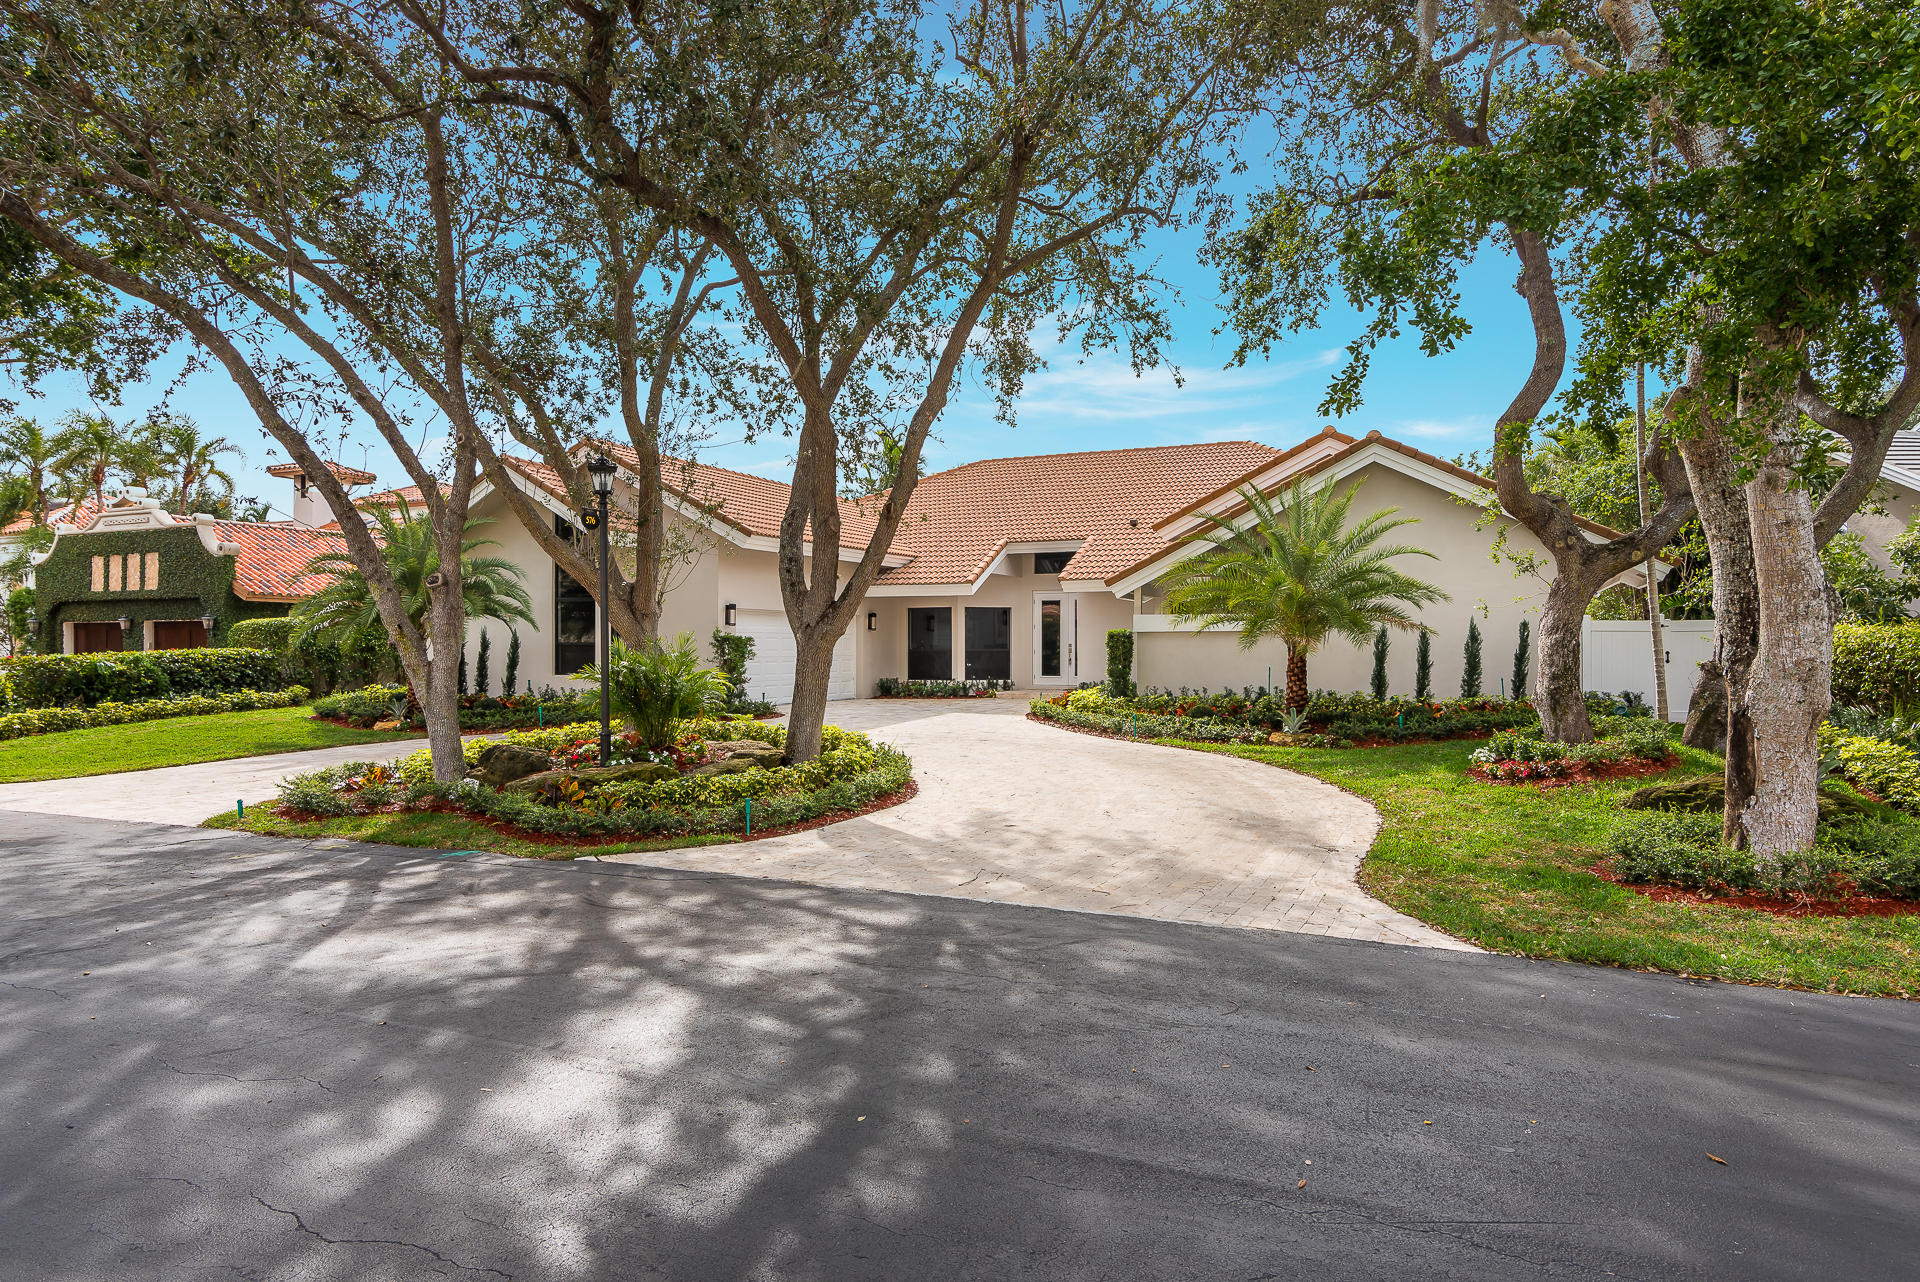 Home for sale in The Sanctuary Boca Raton Florida